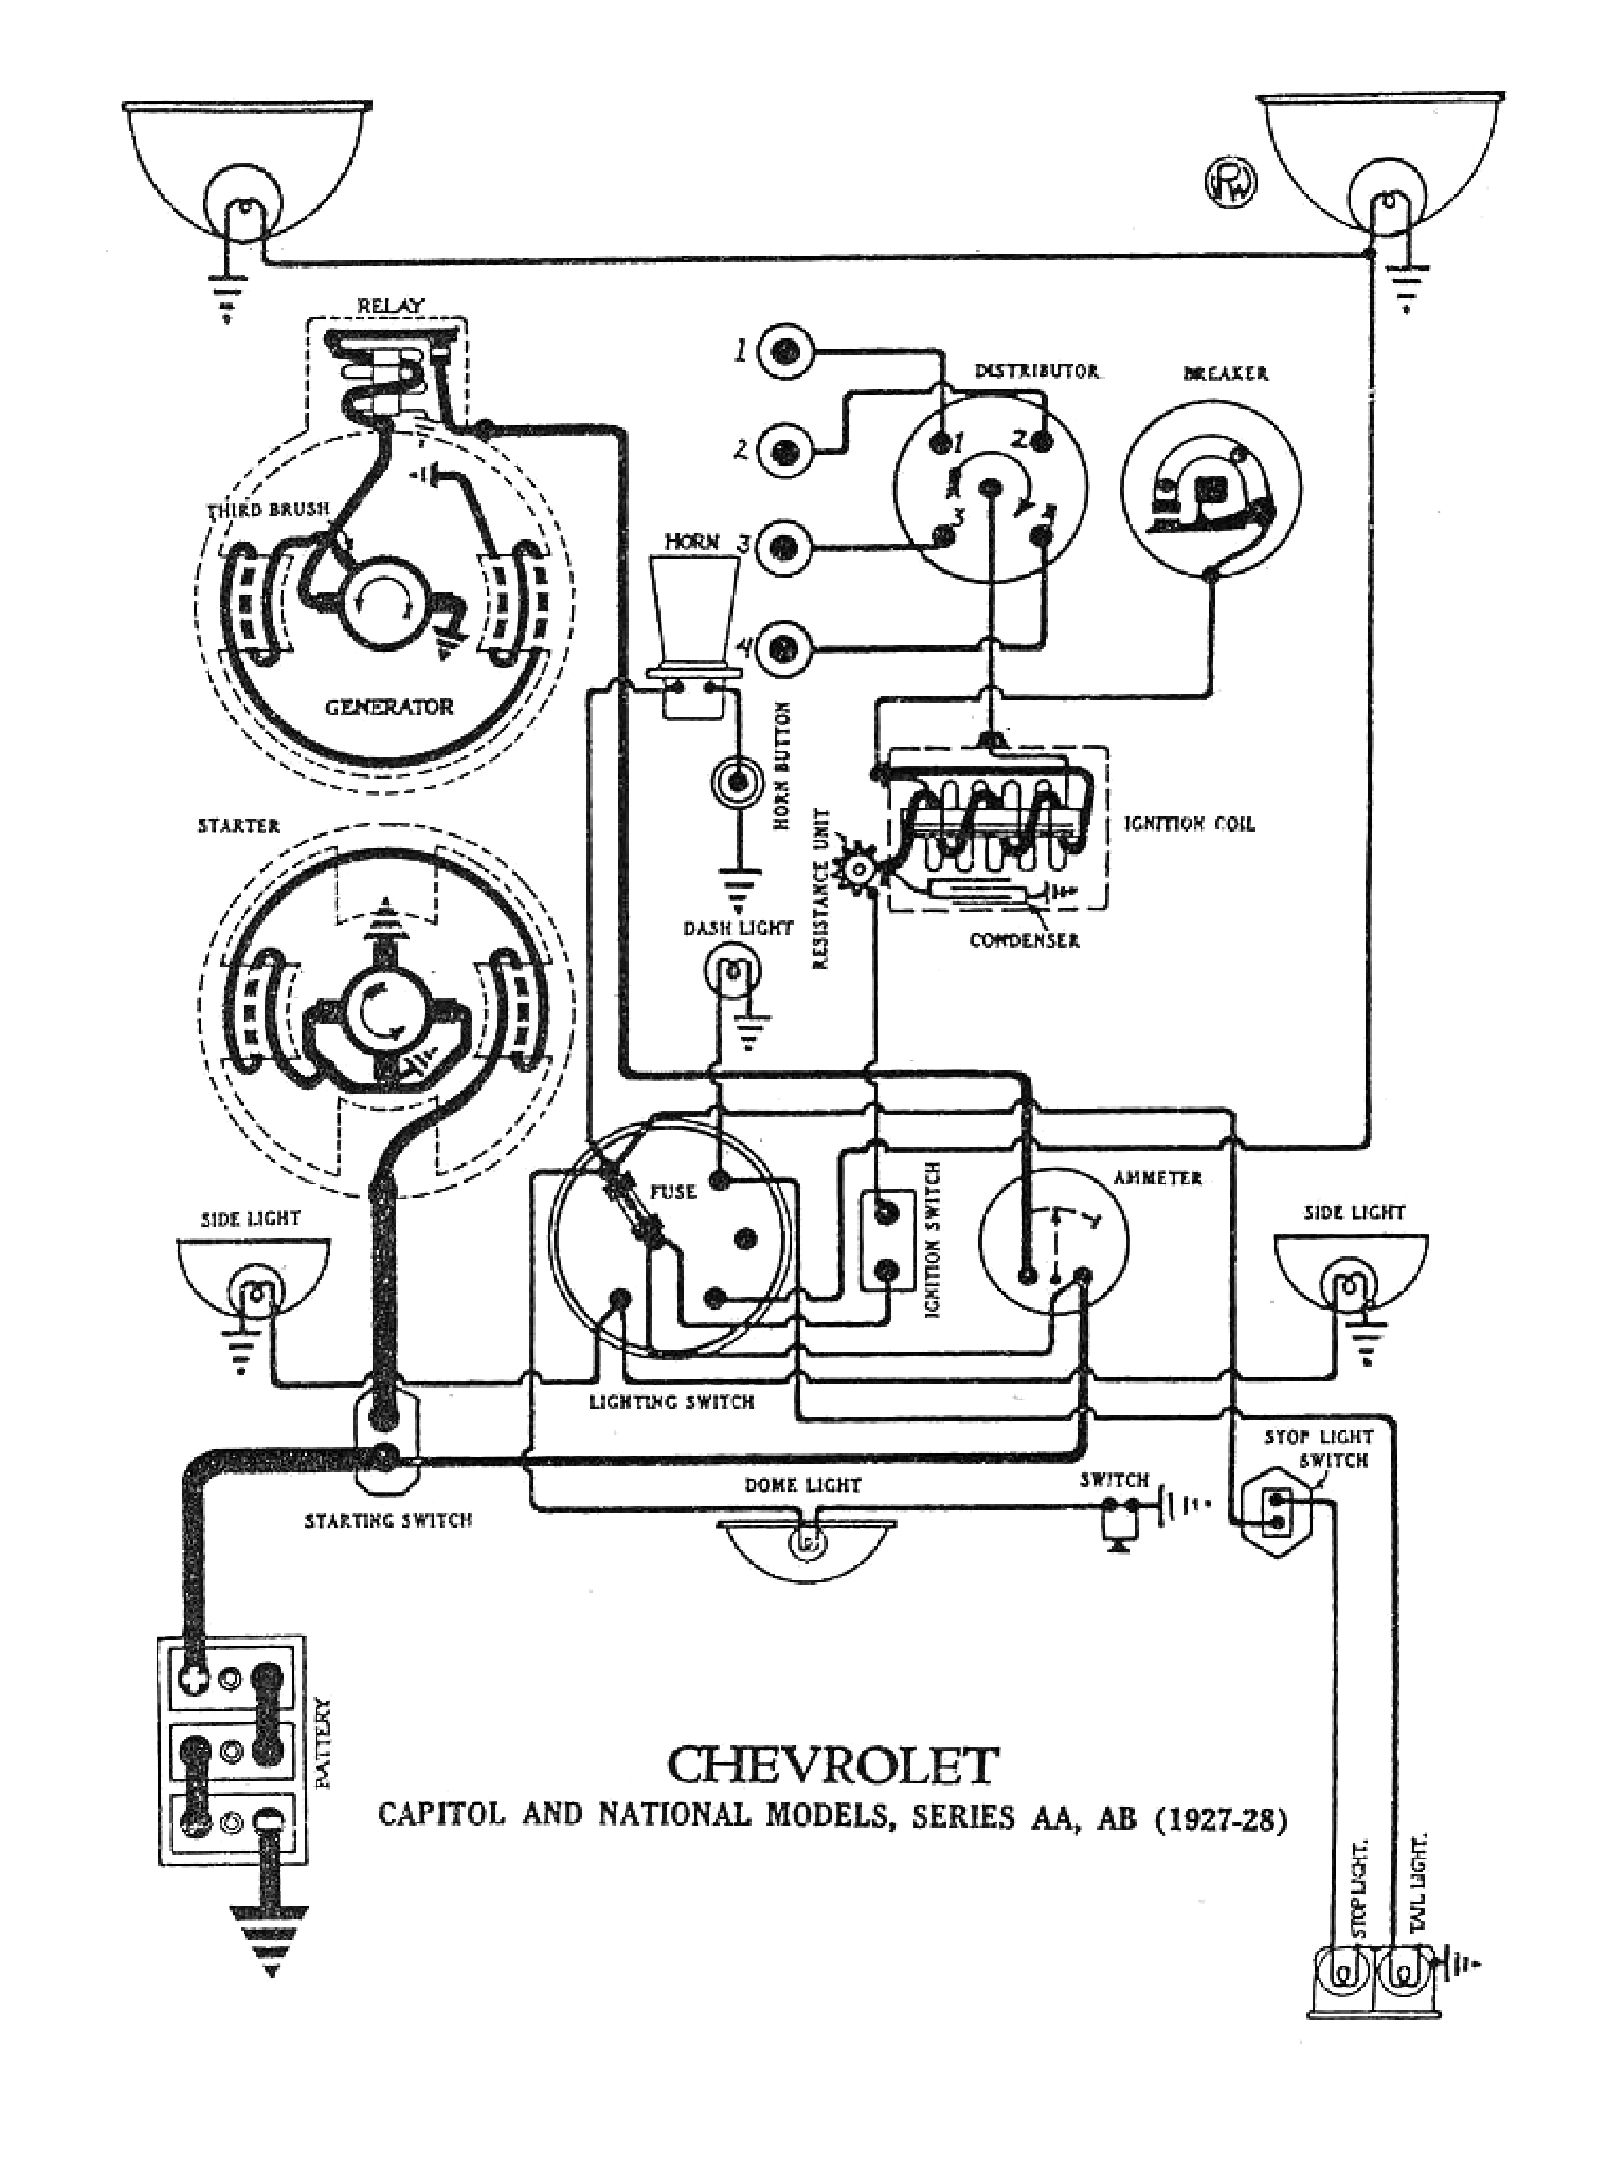 2728wiring chevy wiring diagrams 7mgte wiring diagram at fashall.co